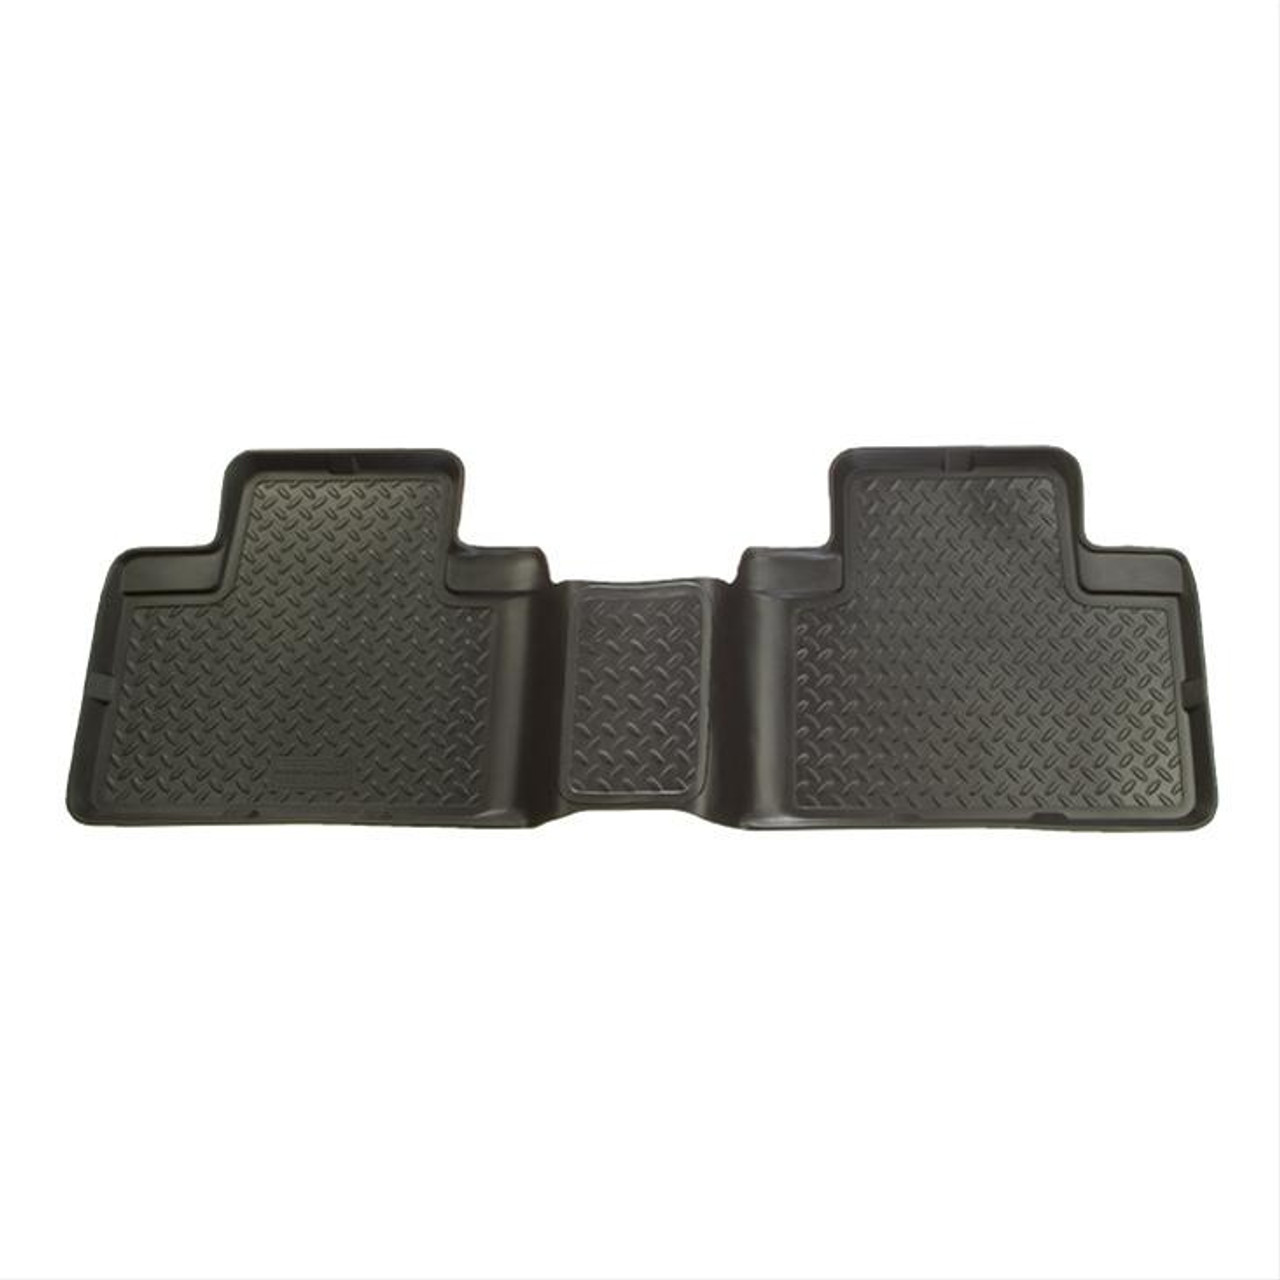 08-15 ROGUE 2ND SEAT CLASSIC FLOOR LINERS BLK